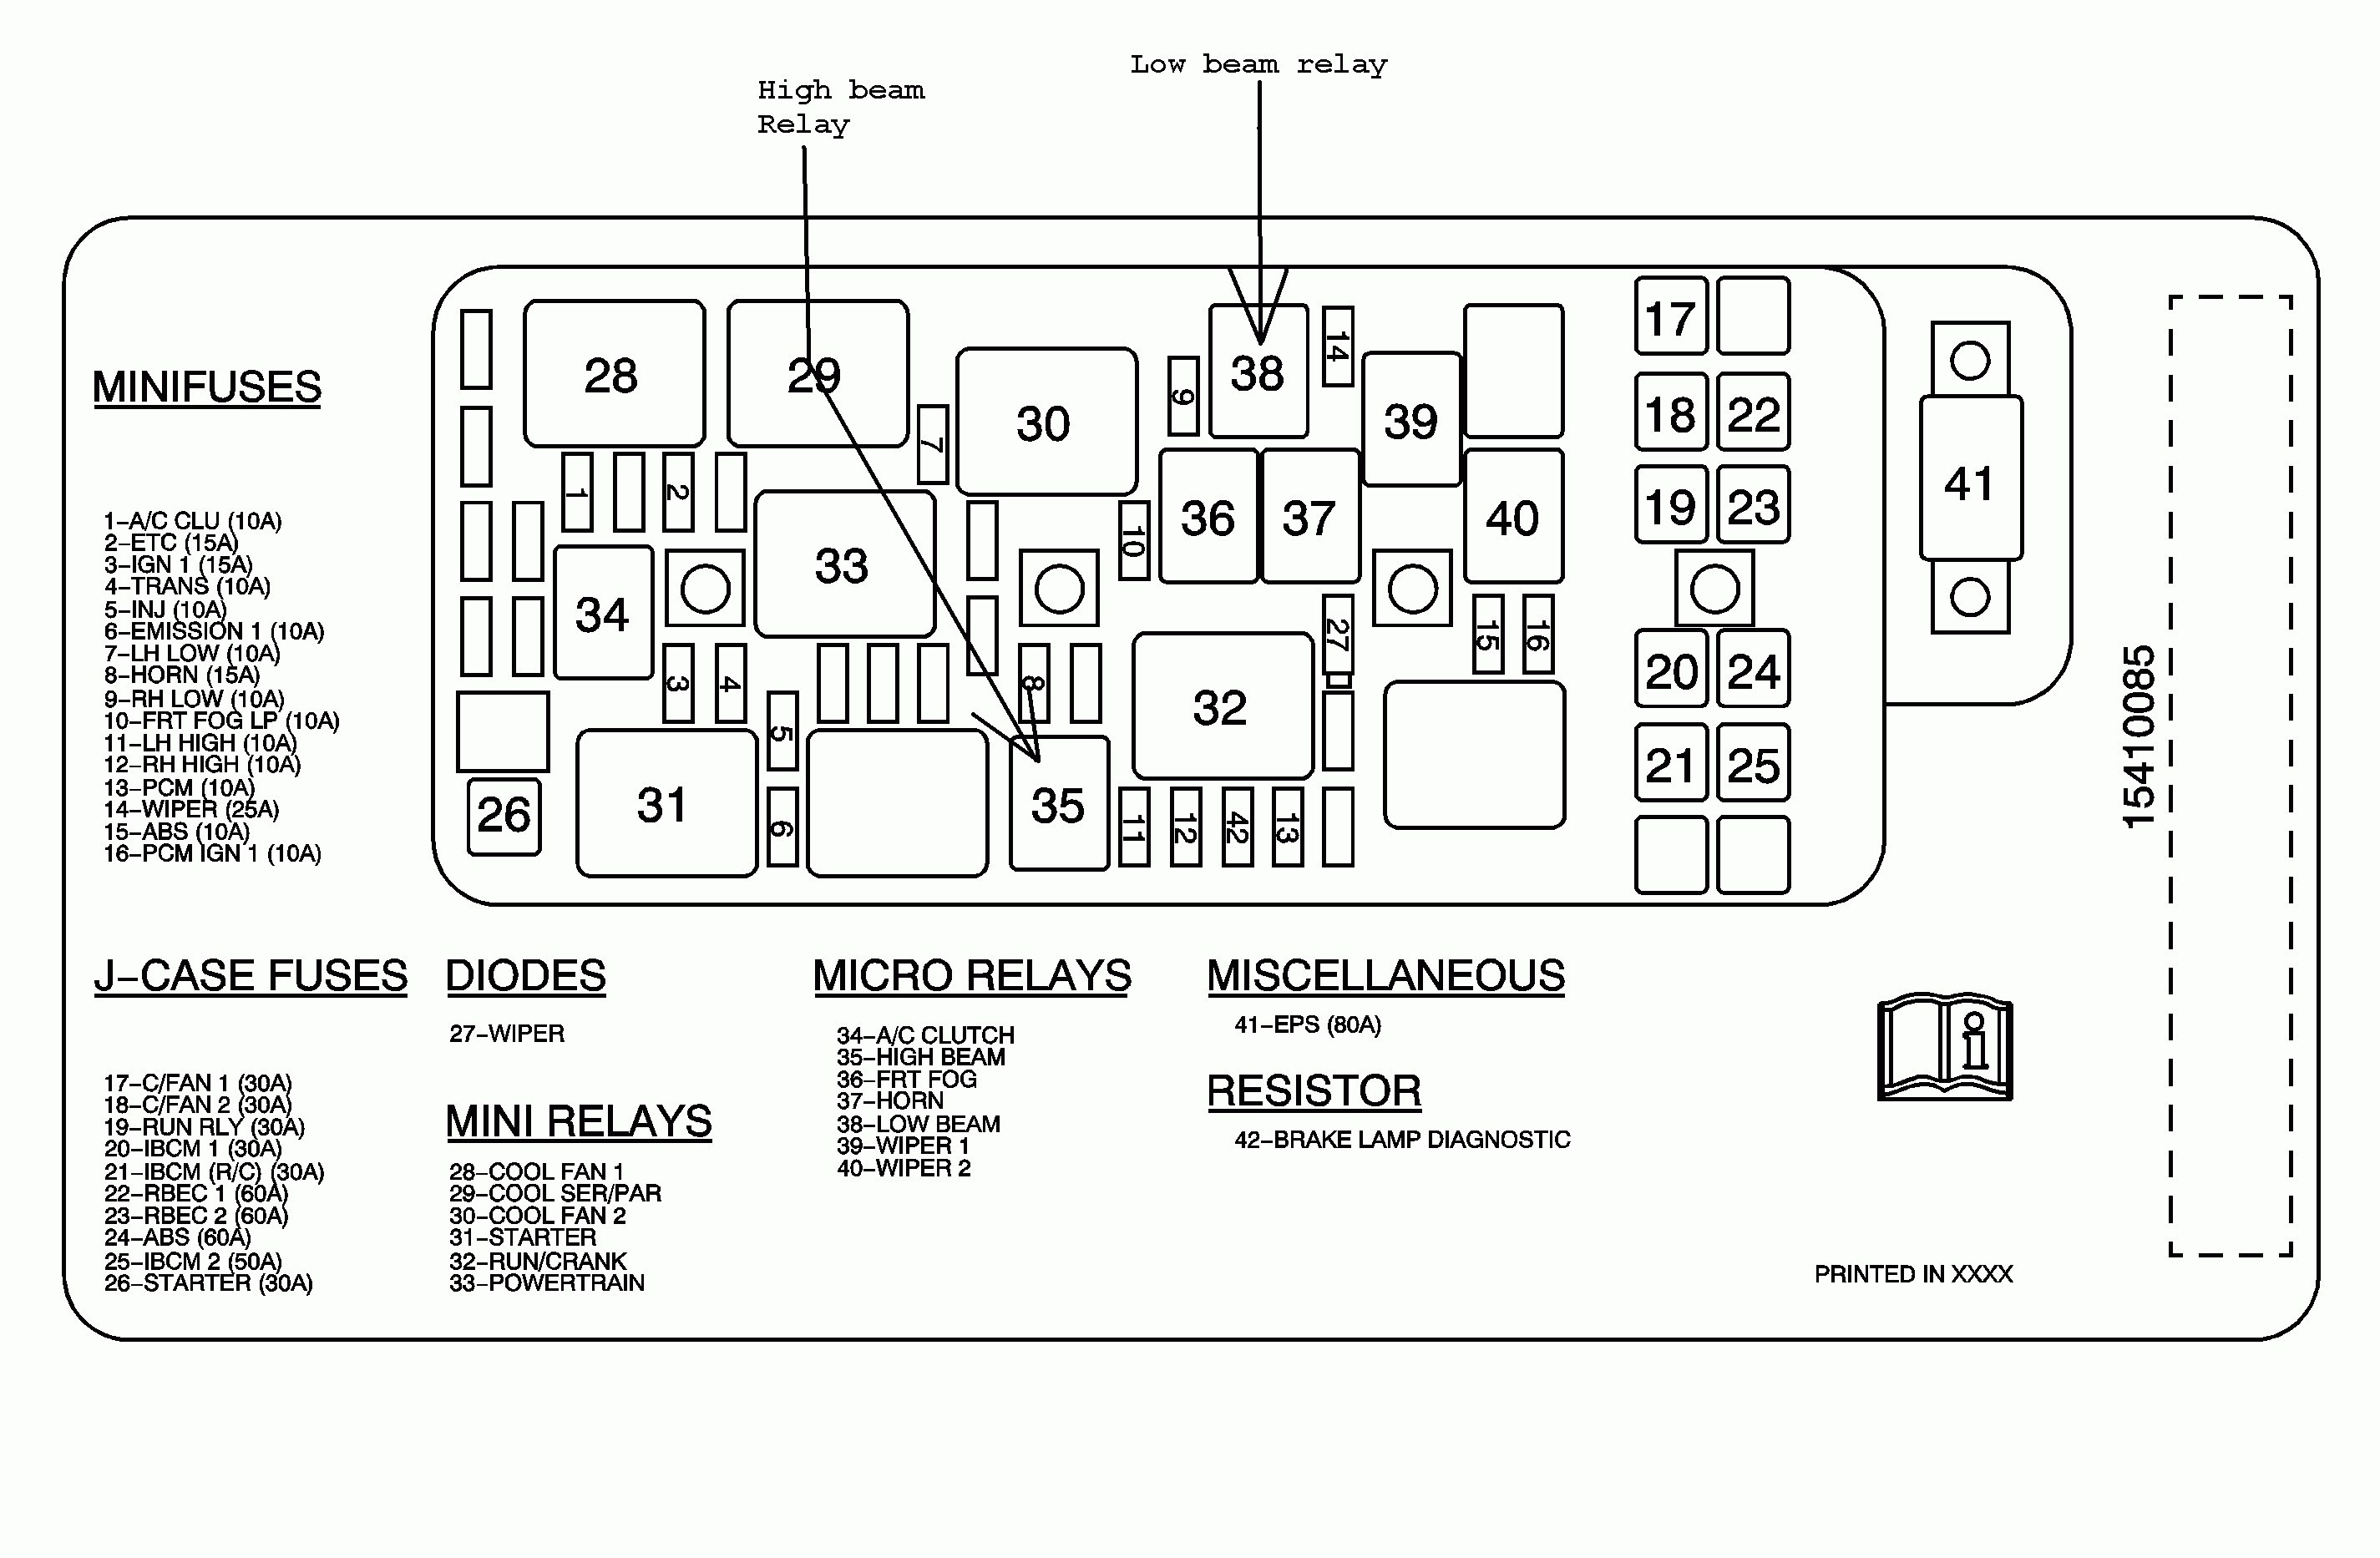 2010 Chevy Cobalt Engine Diagram | Wiring Library